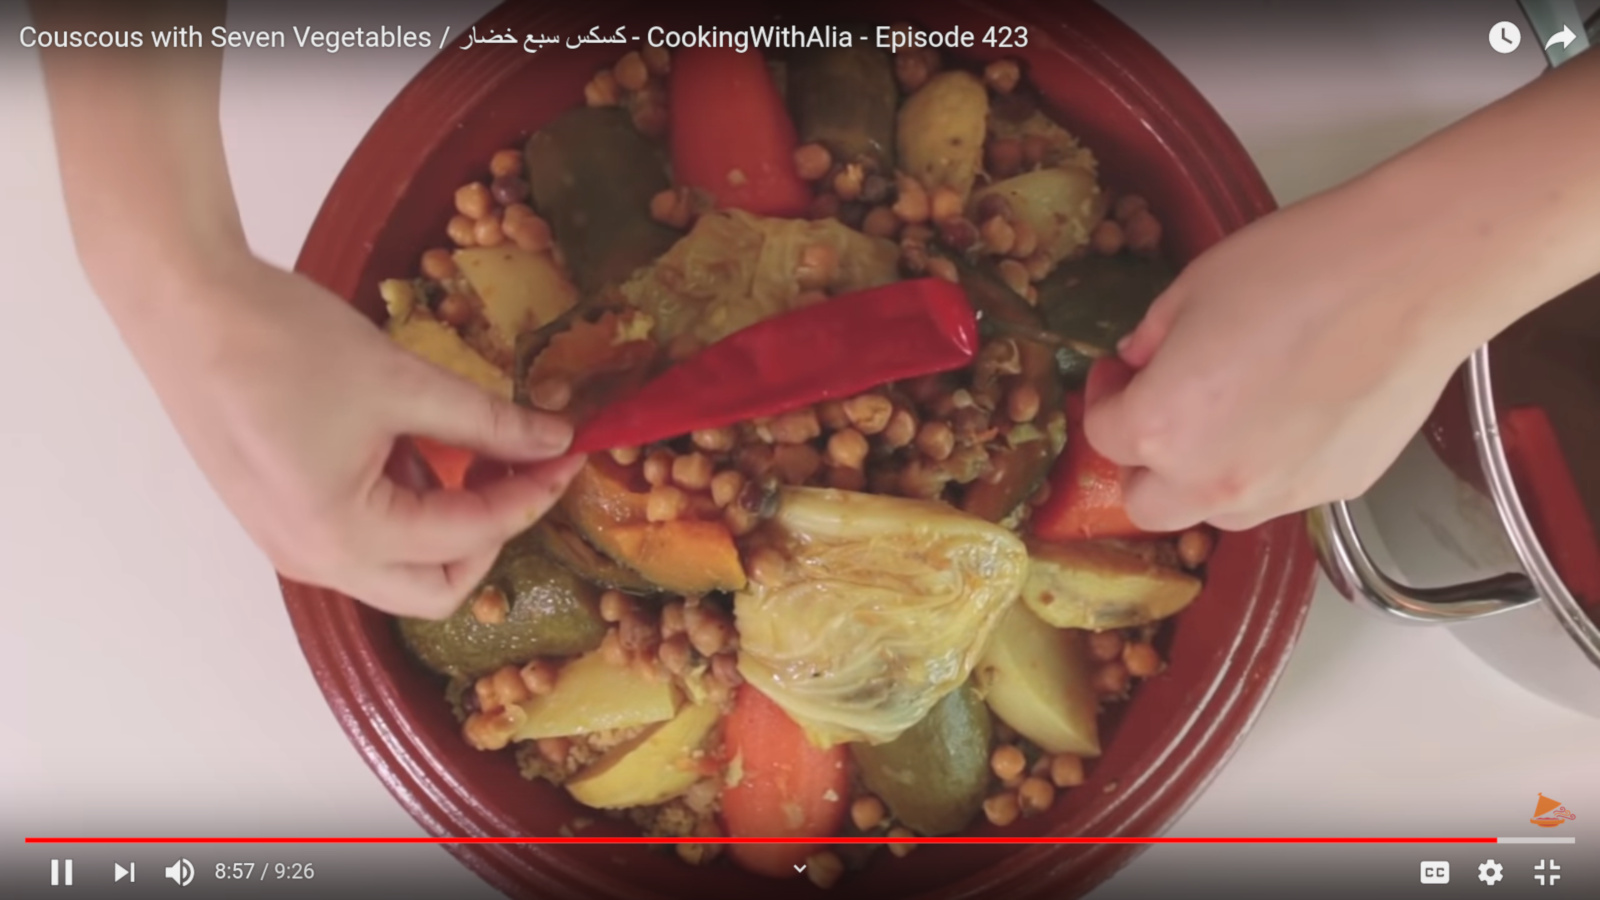 Screenshot from Couscous with Seven Vegetables by Cooking With Alia